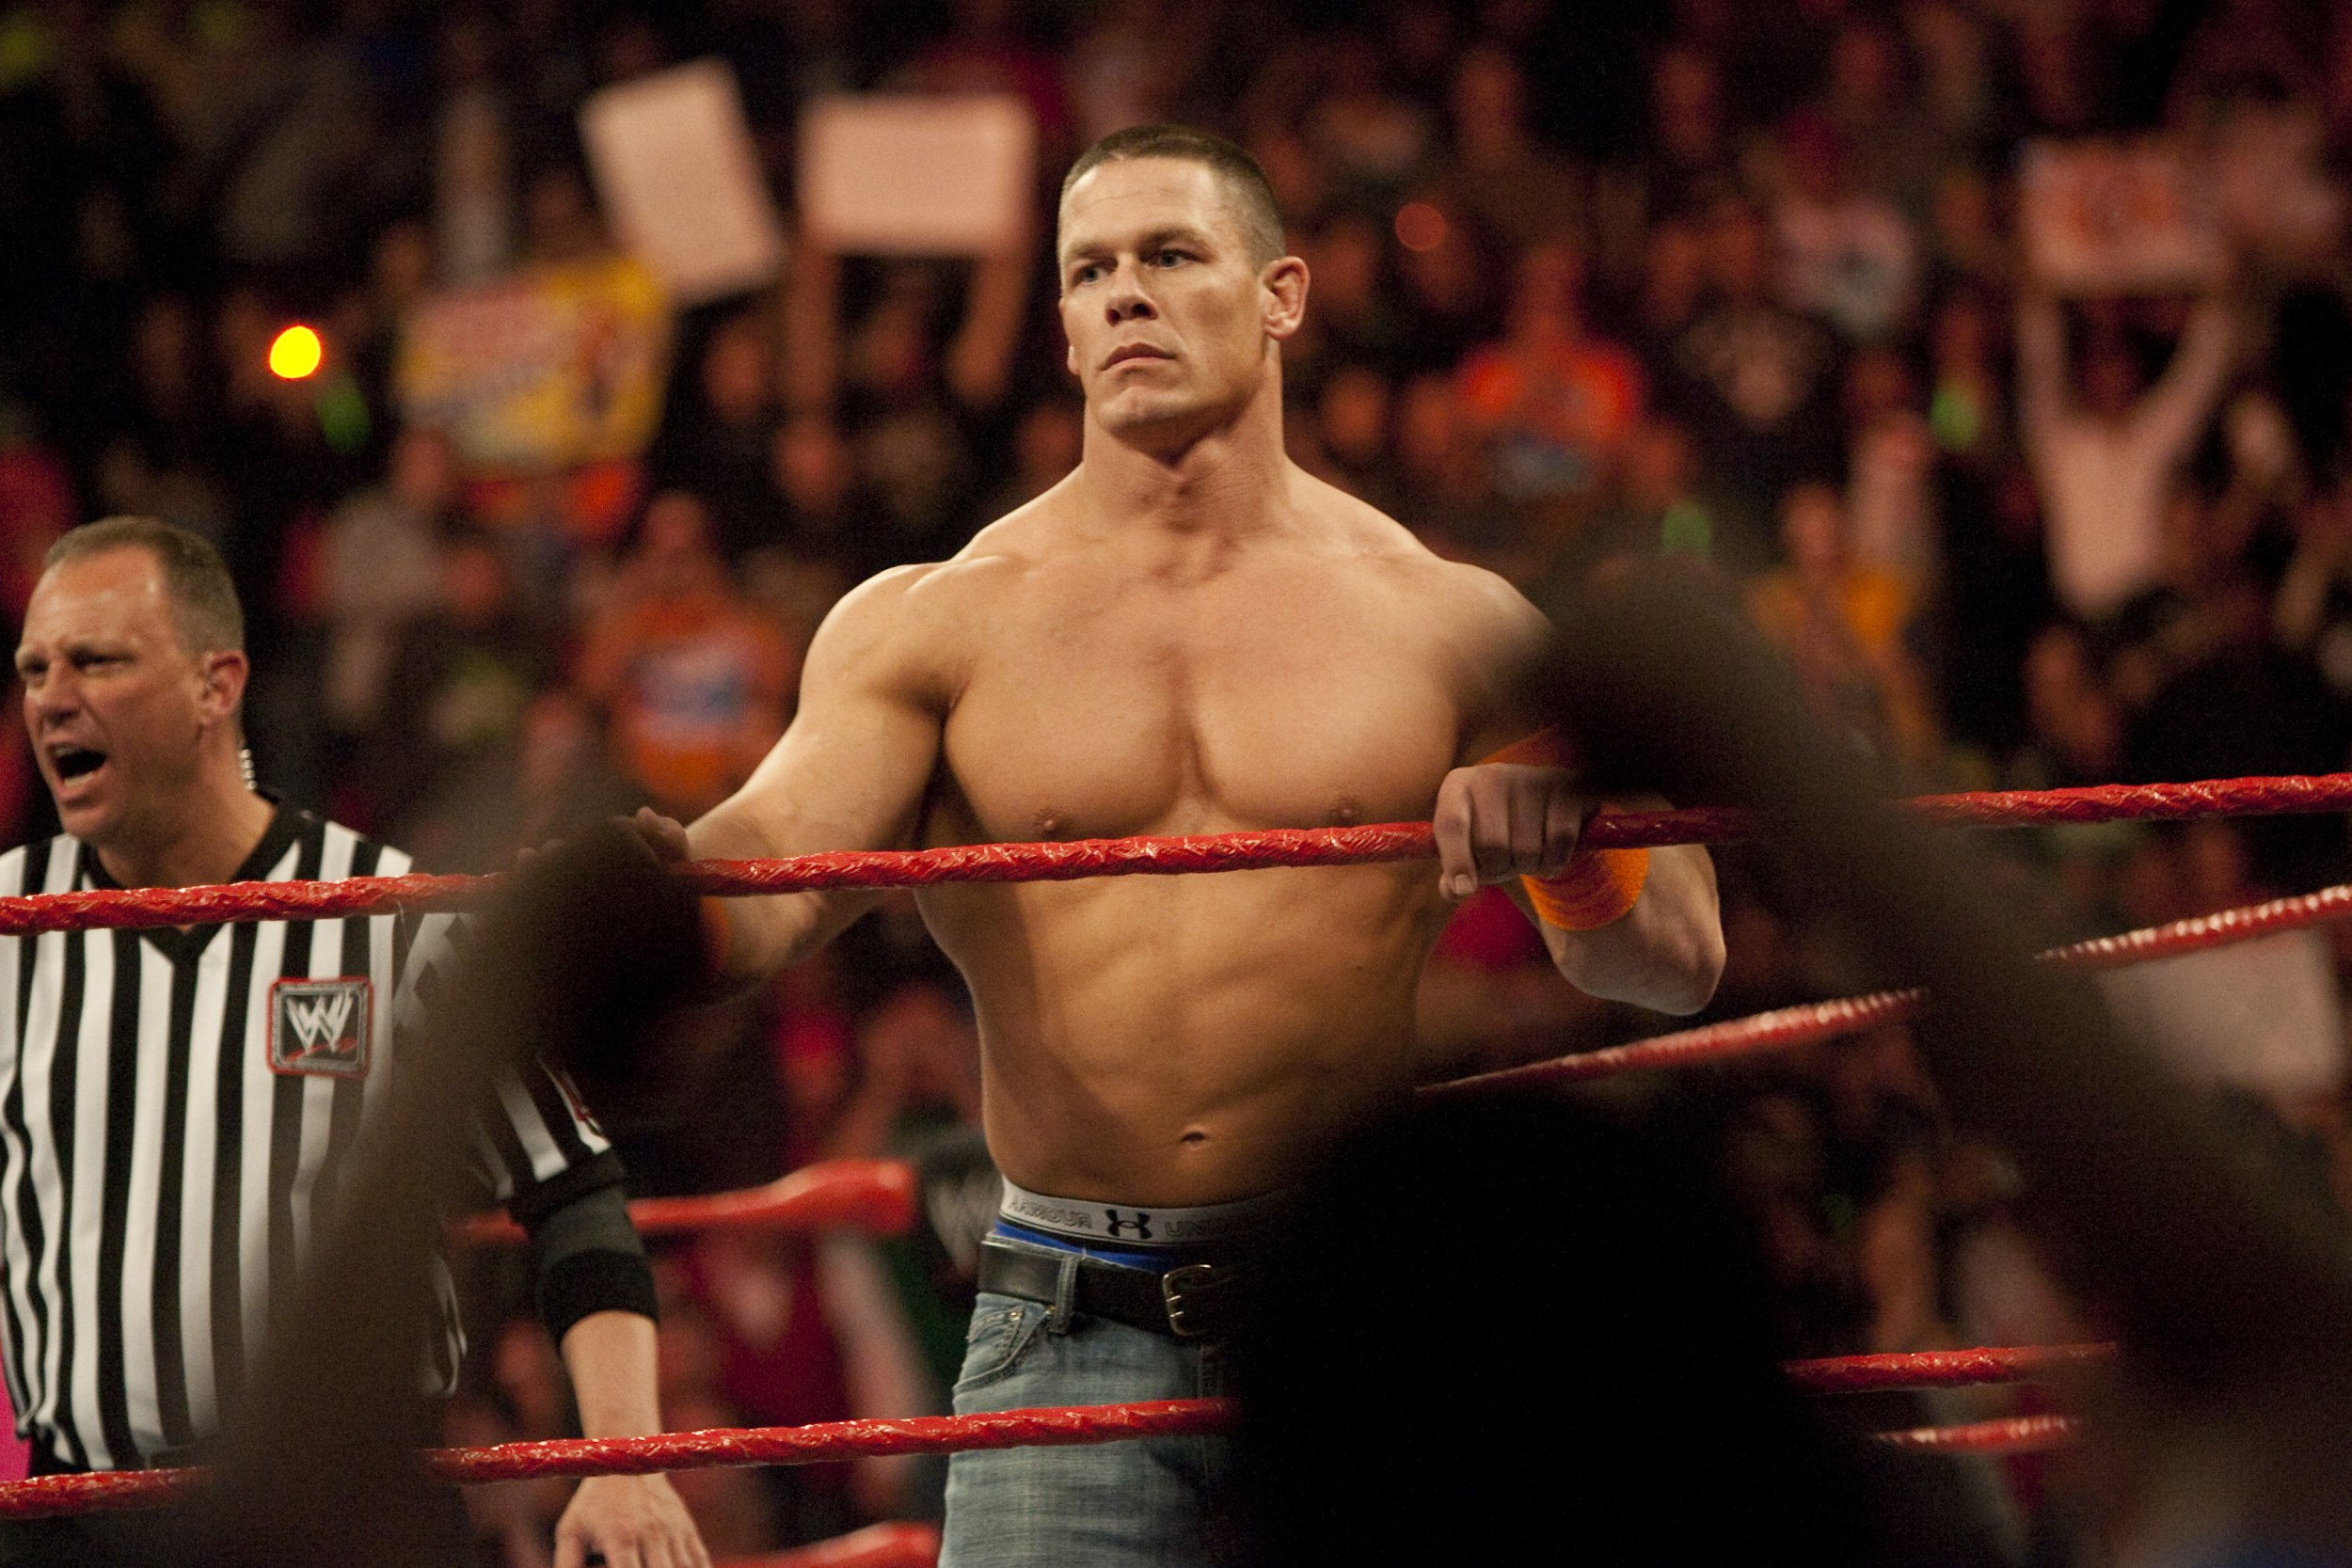 John Cena waits in the ring to face his opponents during WWE's Monday Night Raw at Rose Garden arena in Portland. (Photo by Chris Ryan/Corbis via Getty Images)